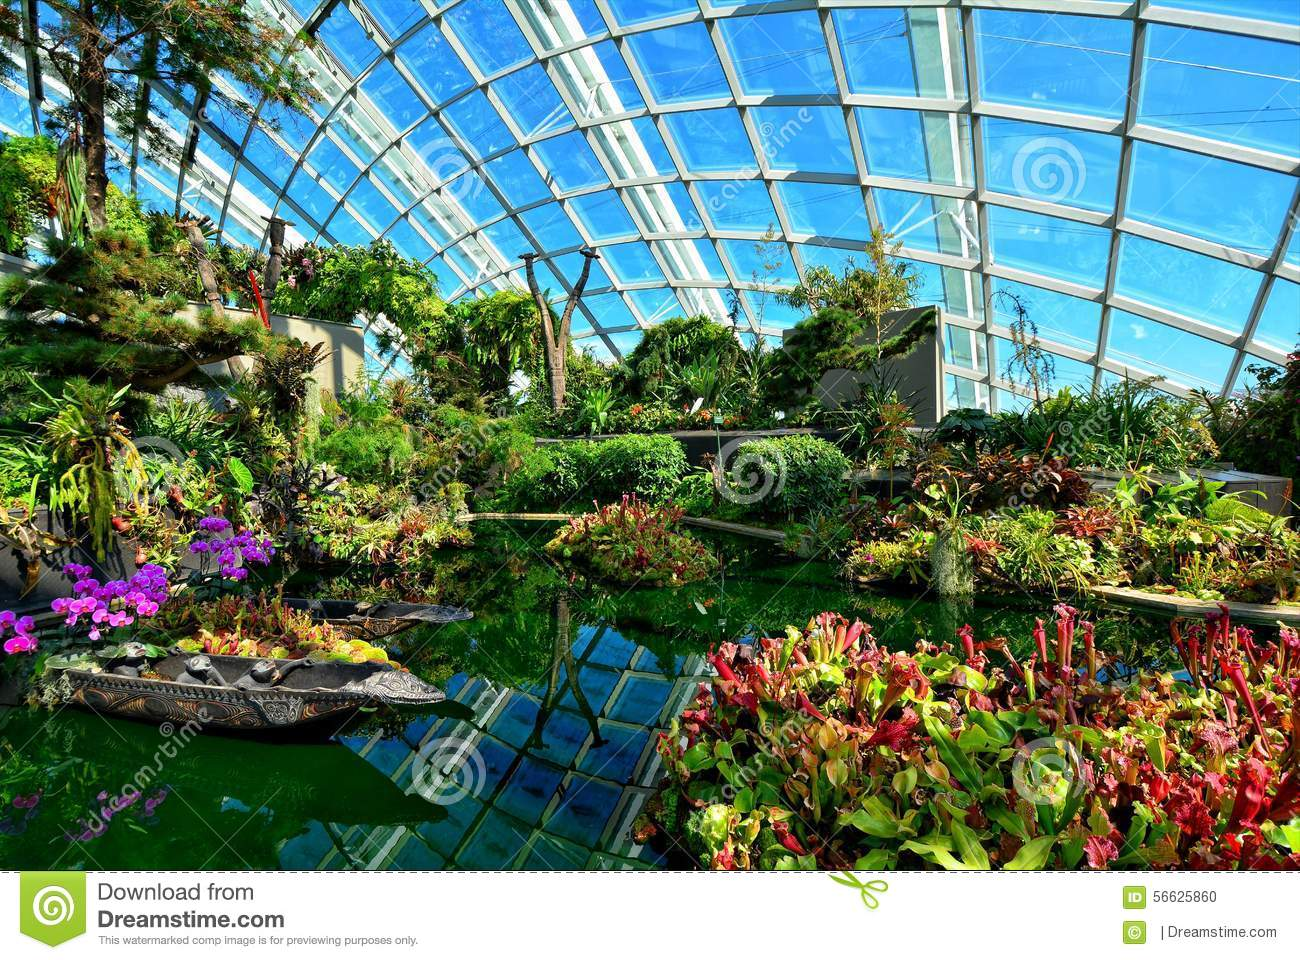 Garden By The Bay Flower flower dome, gardensthe bay, singapore stock photo - image